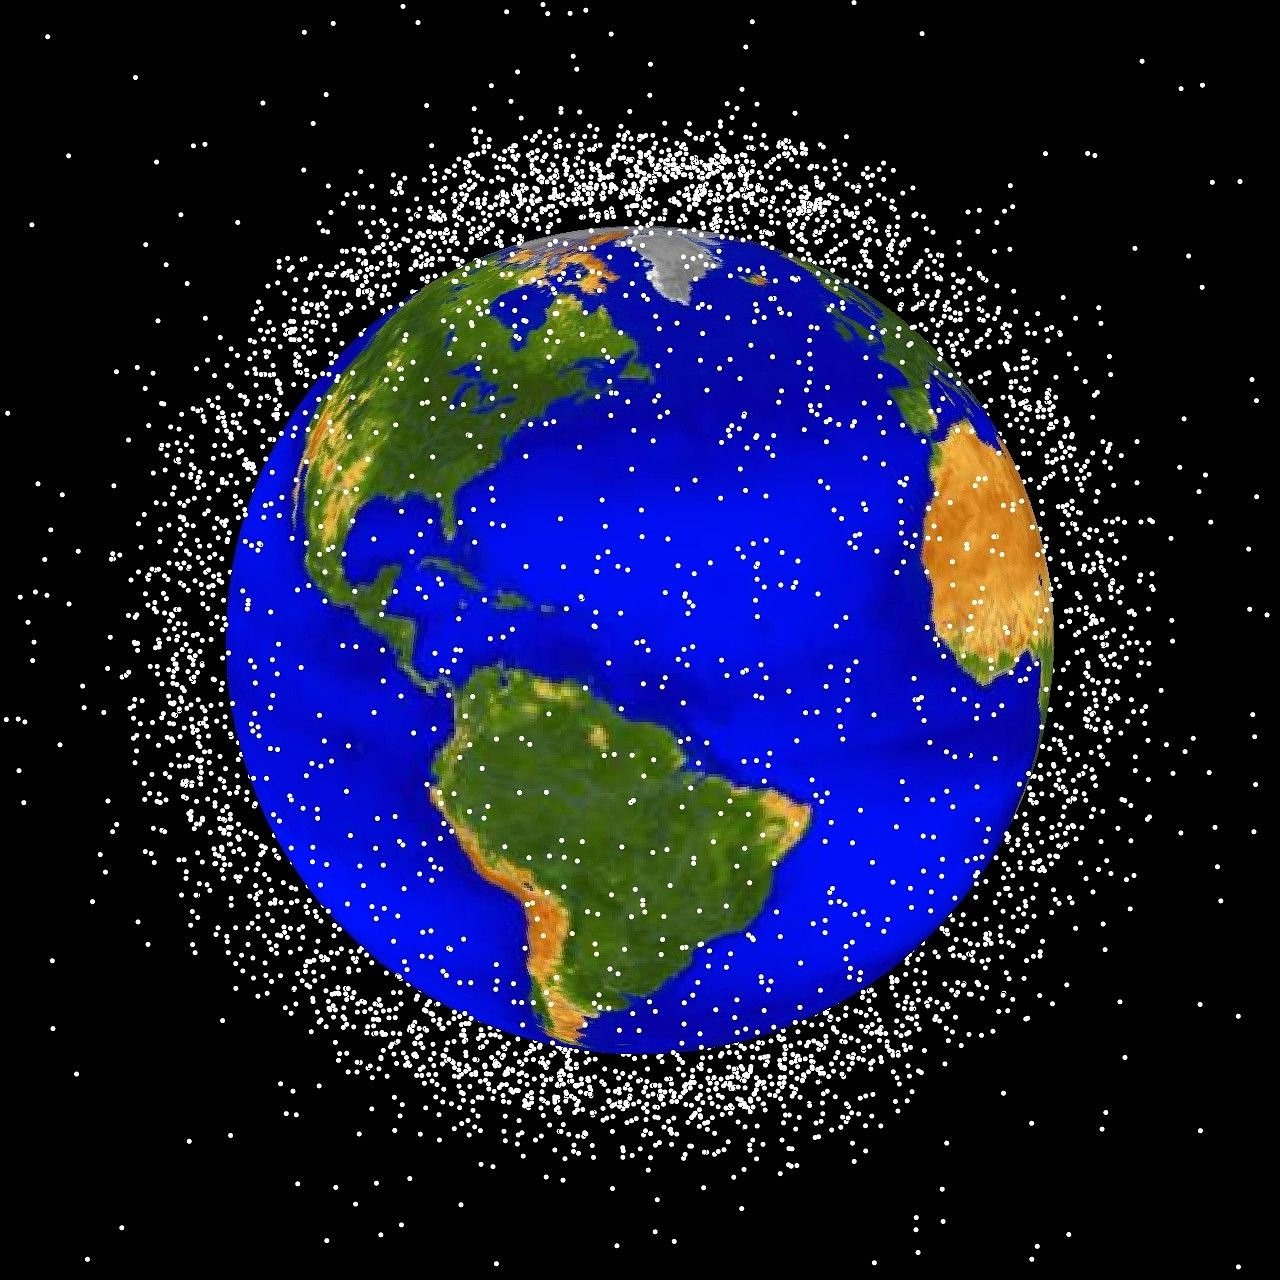 An artist's impression of all the space junk orbiting Earth (not drawn to scale).